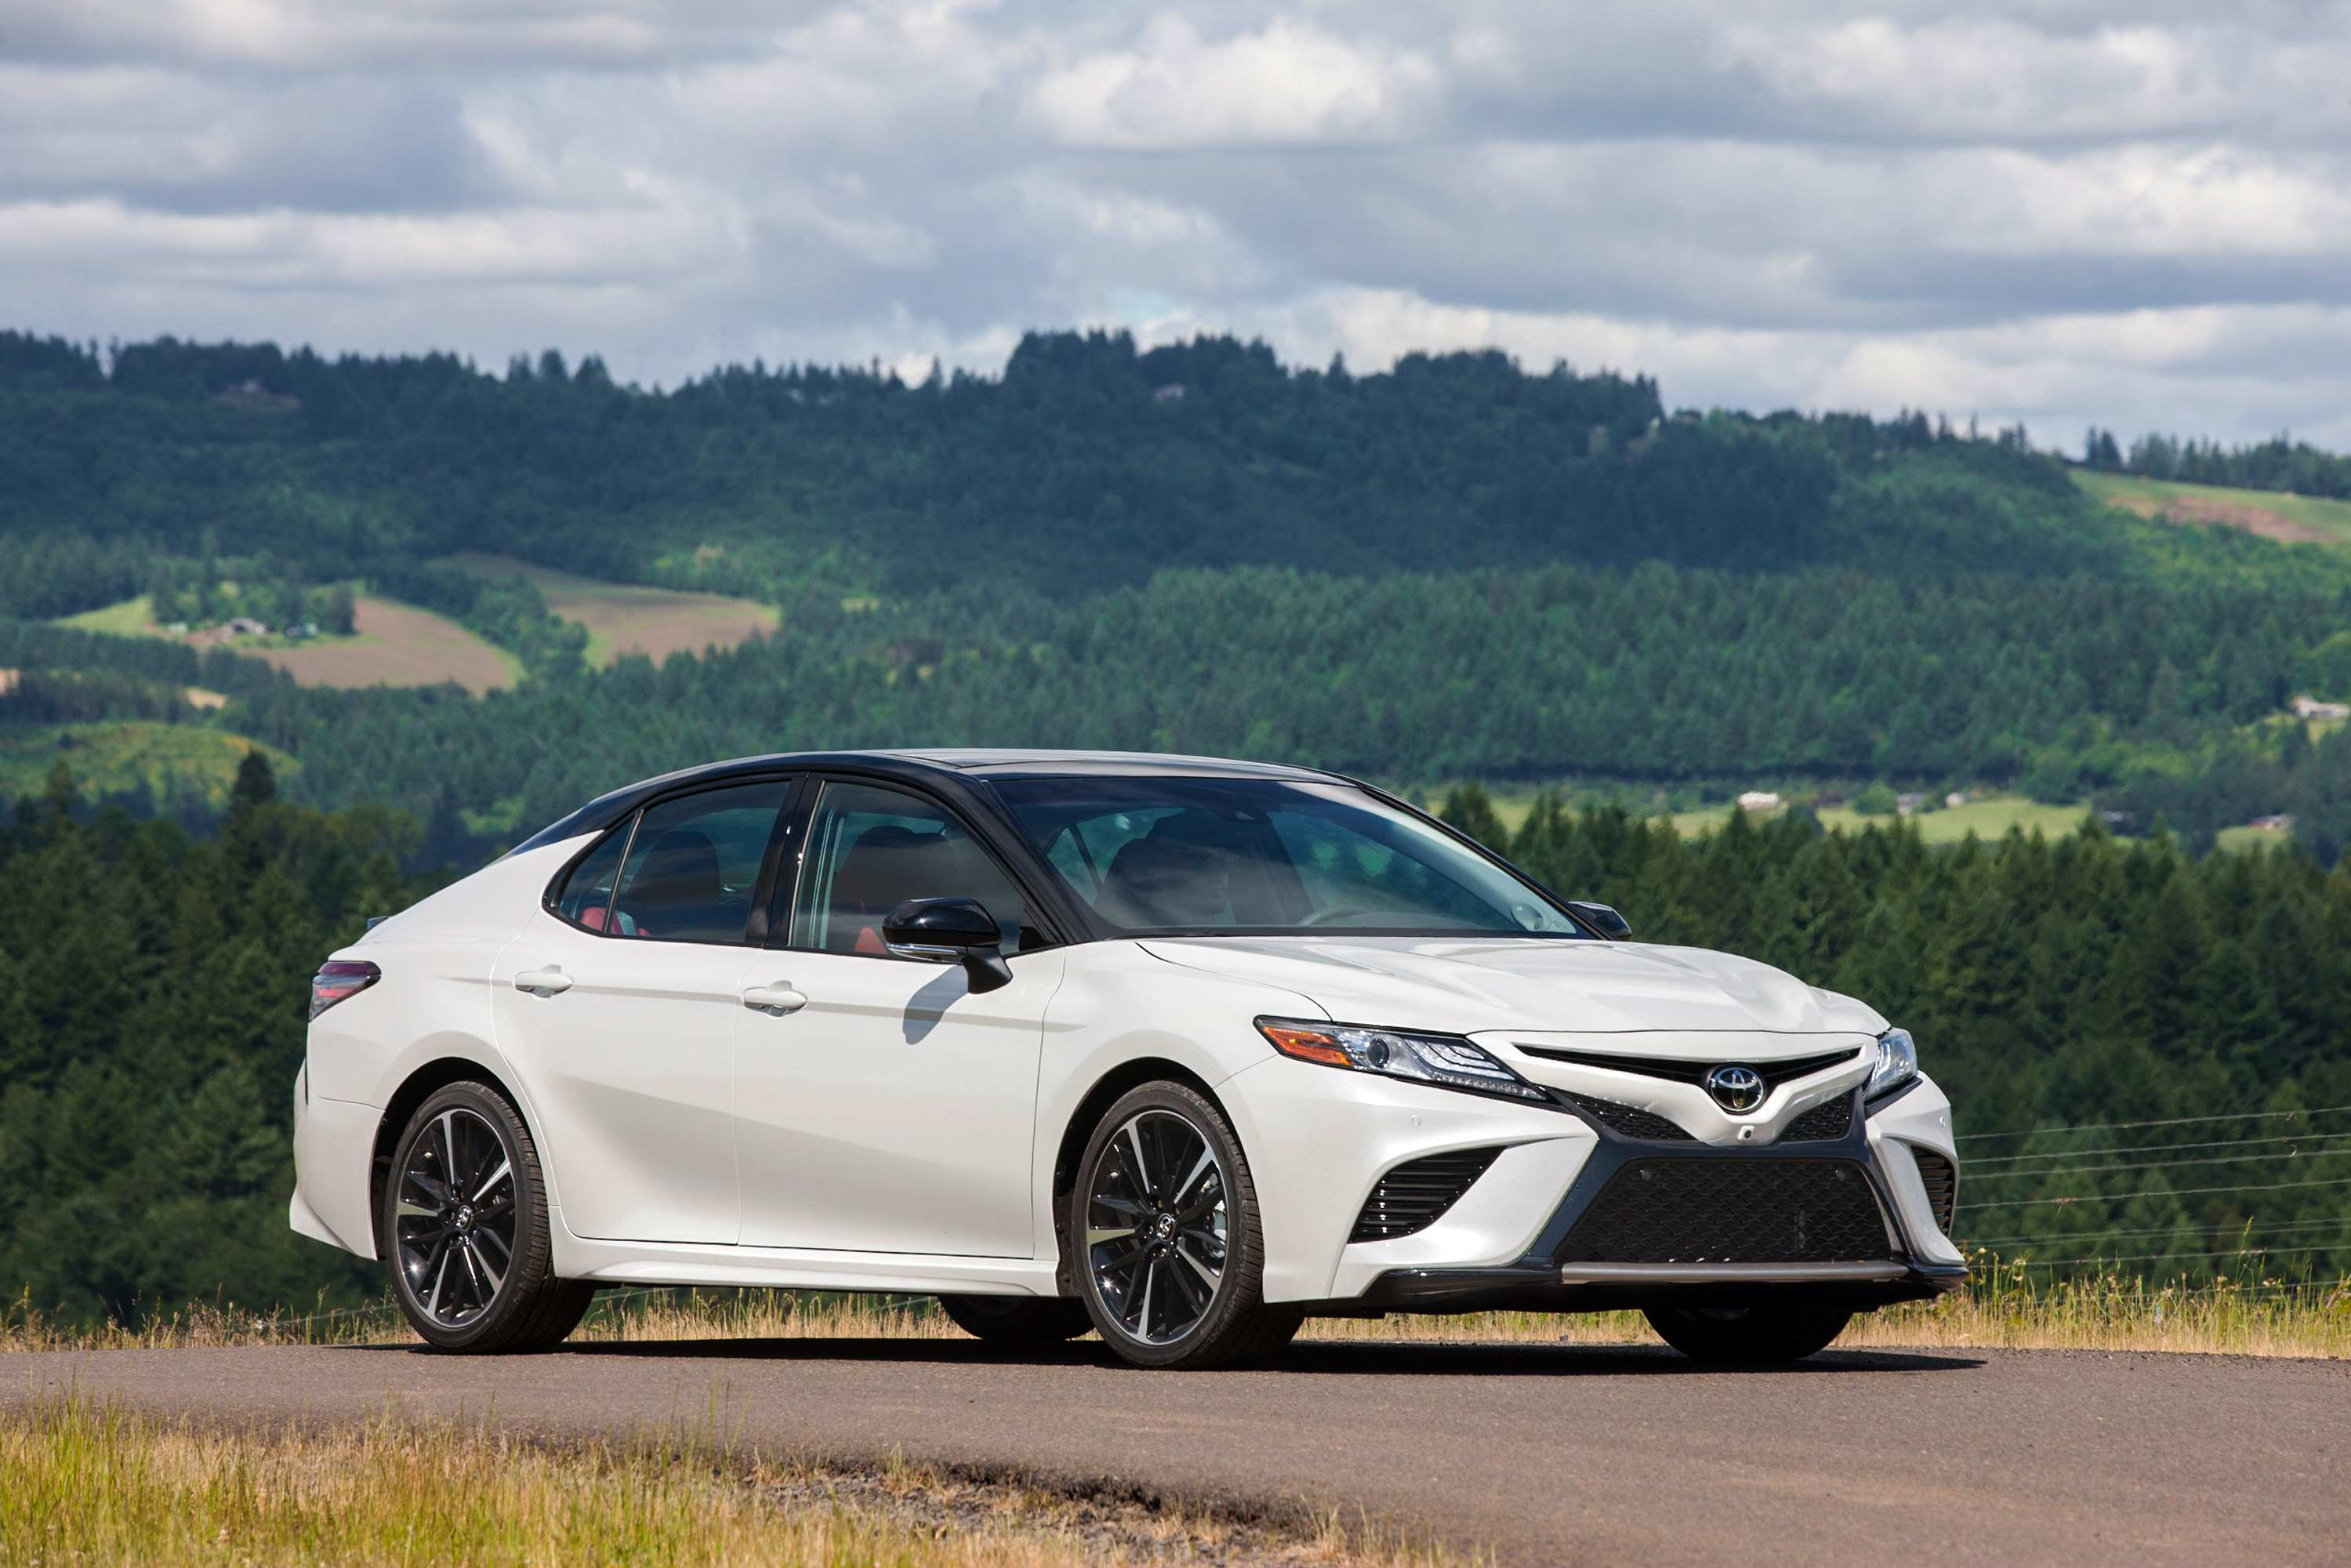 99 Concept of Best 2019 Toyota Camry Xle V6 Review And Price Pictures by Best 2019 Toyota Camry Xle V6 Review And Price